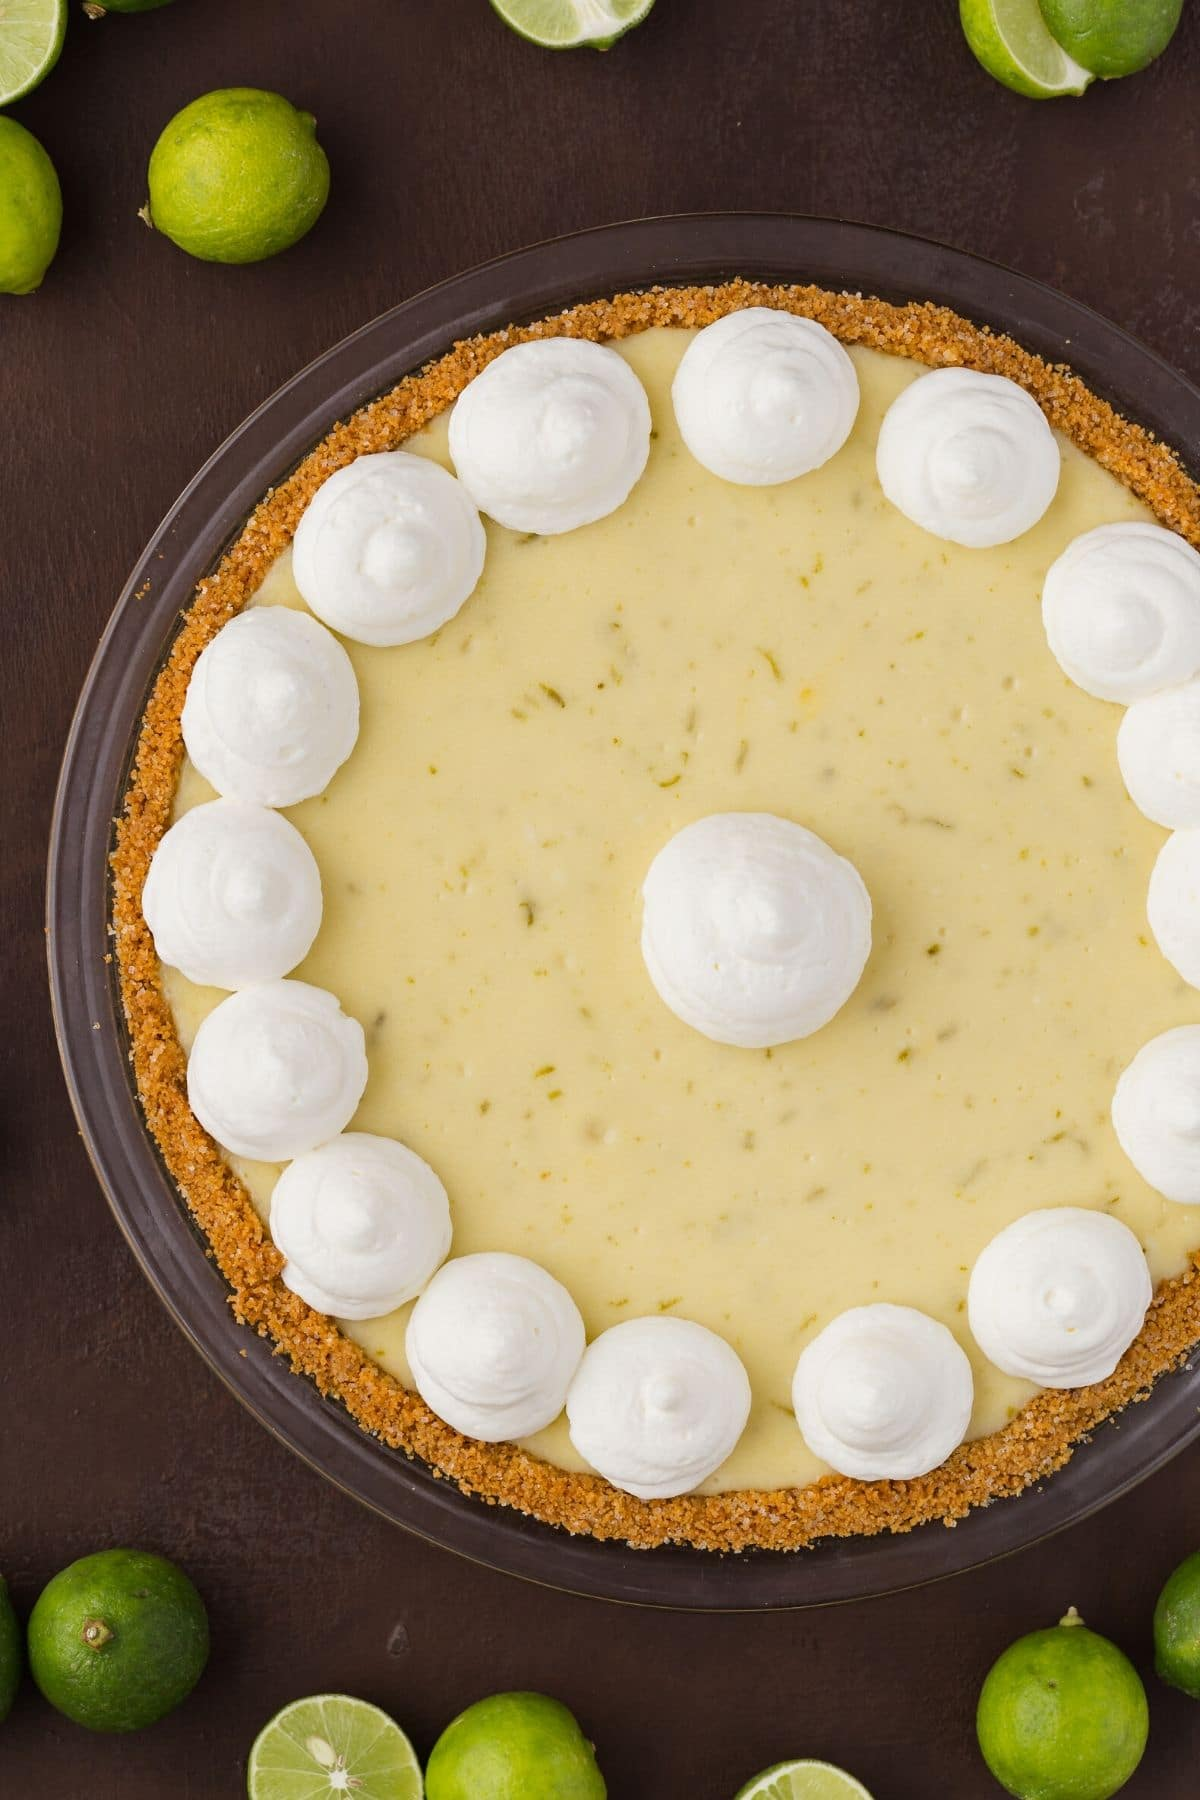 Close overhead view of a whole key lime cheesecake pie with swirls of whipped cream on top.